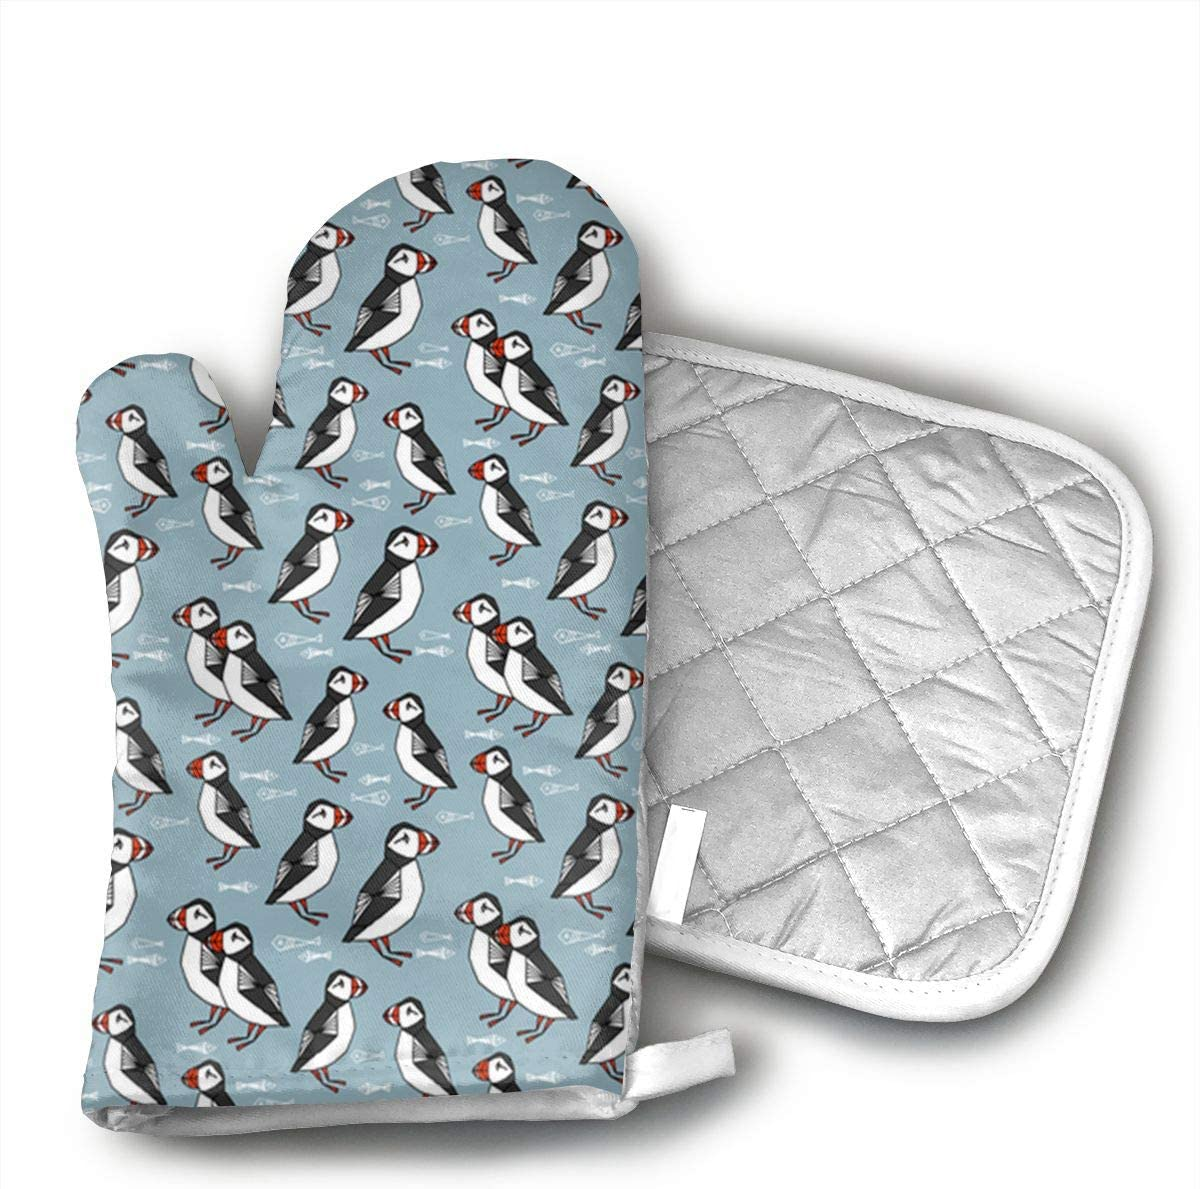 HEPKL Oven Mitts and Potholders Puffin Birds Blue Non-Slip Grip Heat Resistant Oven Gloves BBQ Cooking Baking Grilling